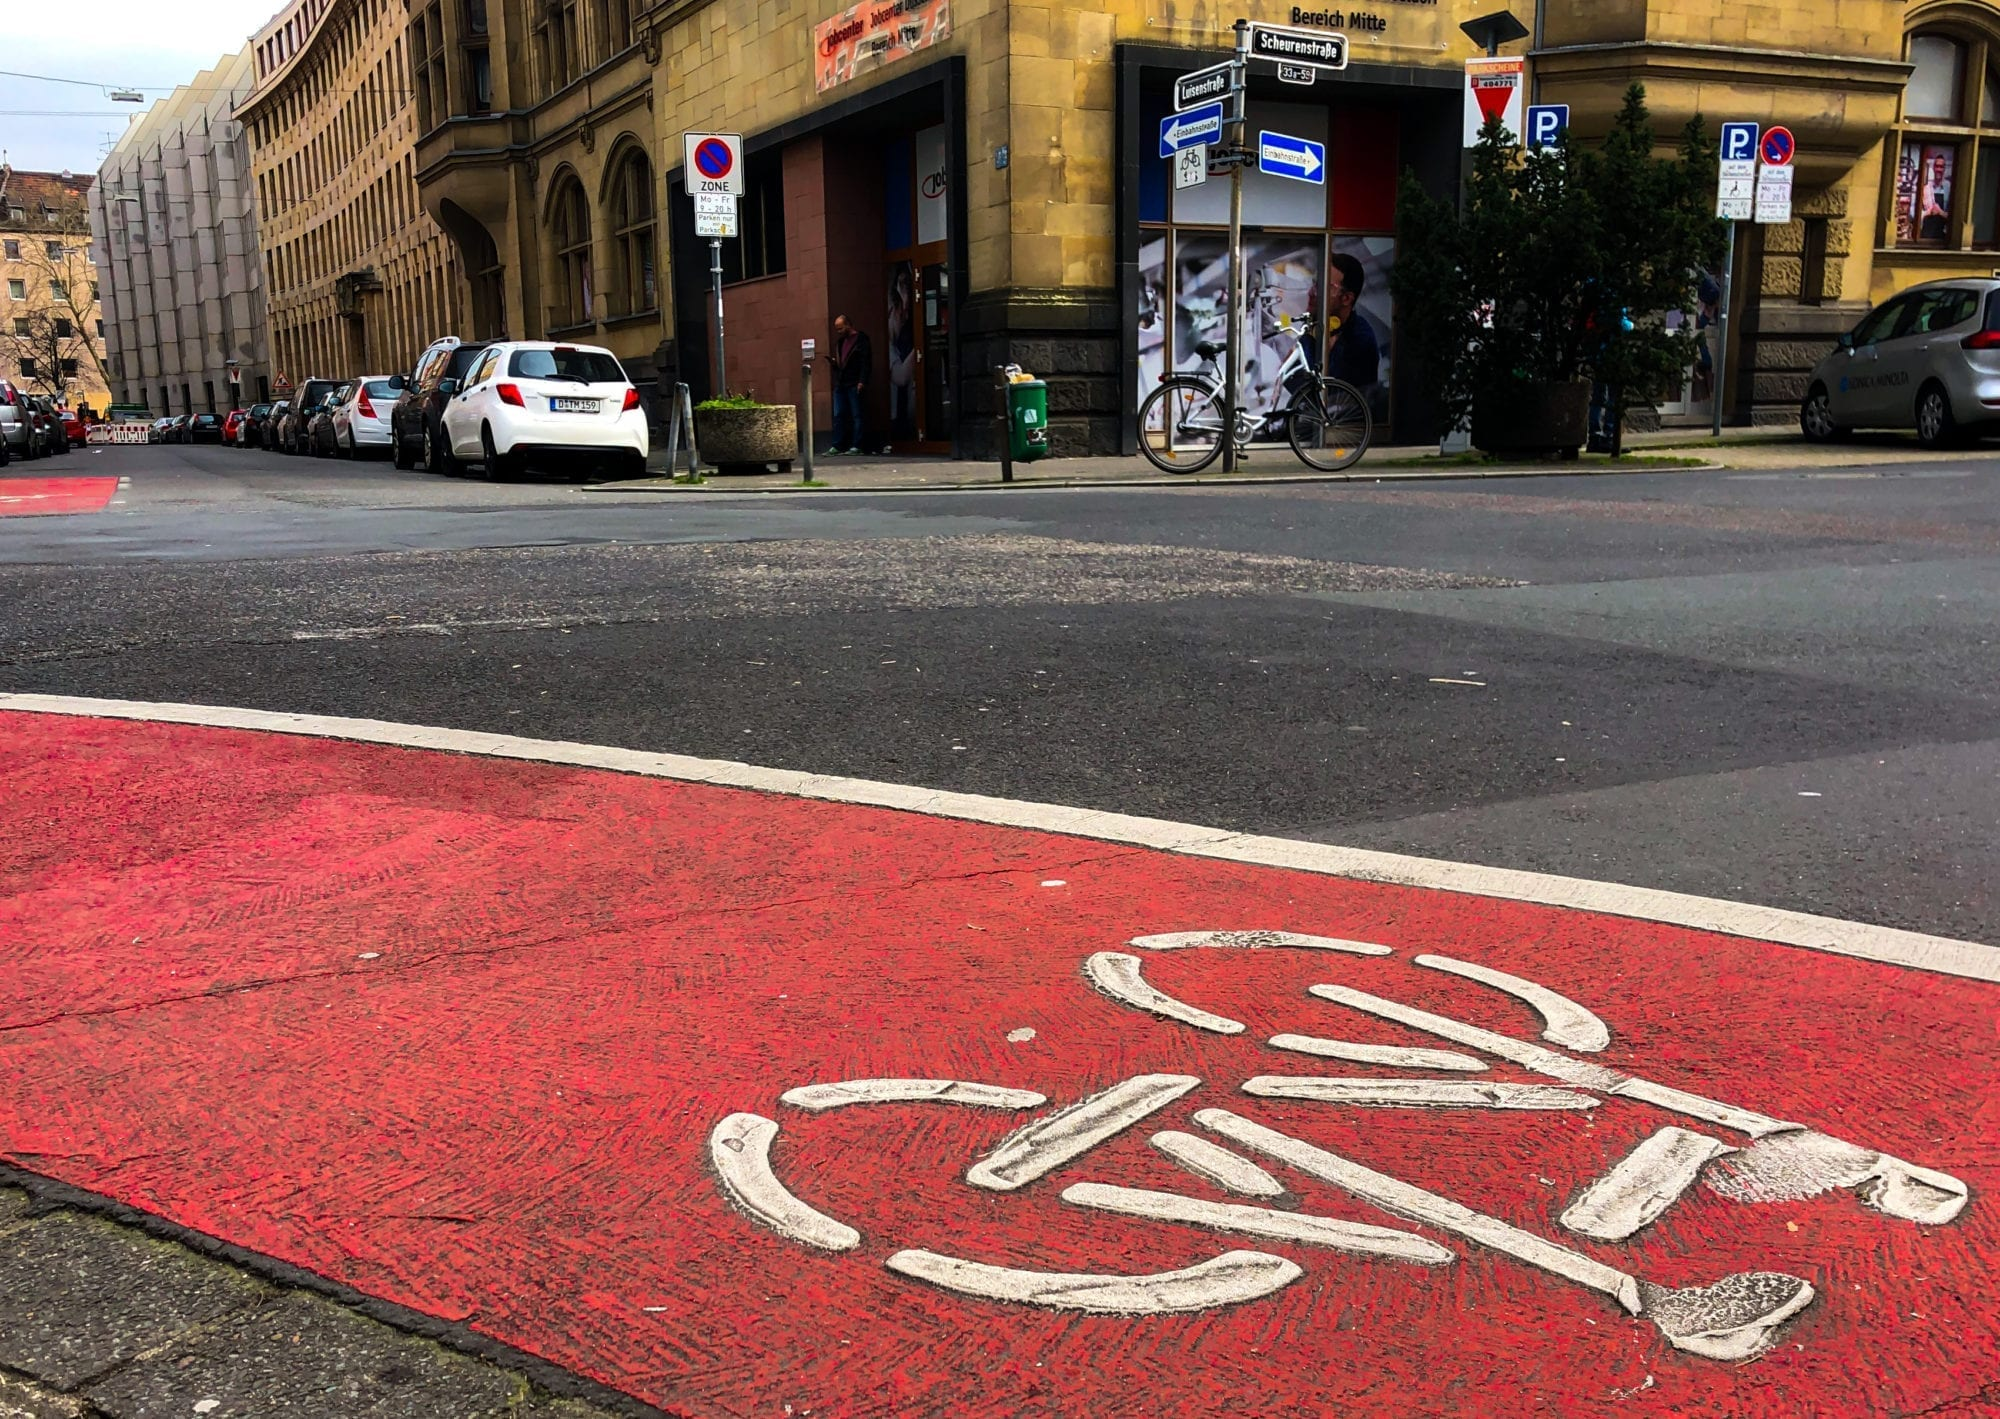 Biking in Düsseldorf: 8 Important Things You Need to Know